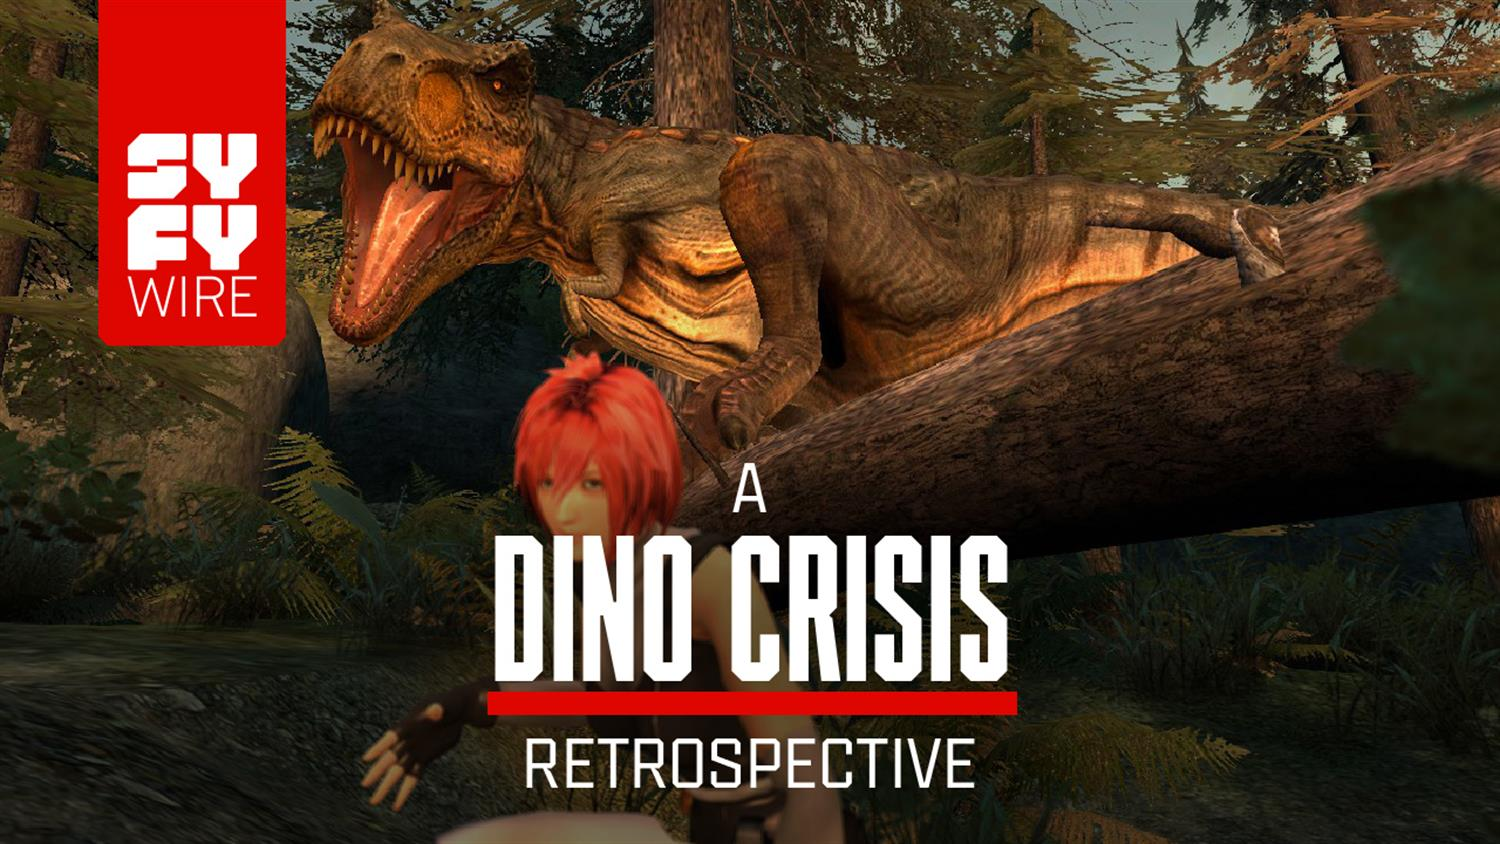 Dino Crisis: It Deserves More Respect (A Look Back)